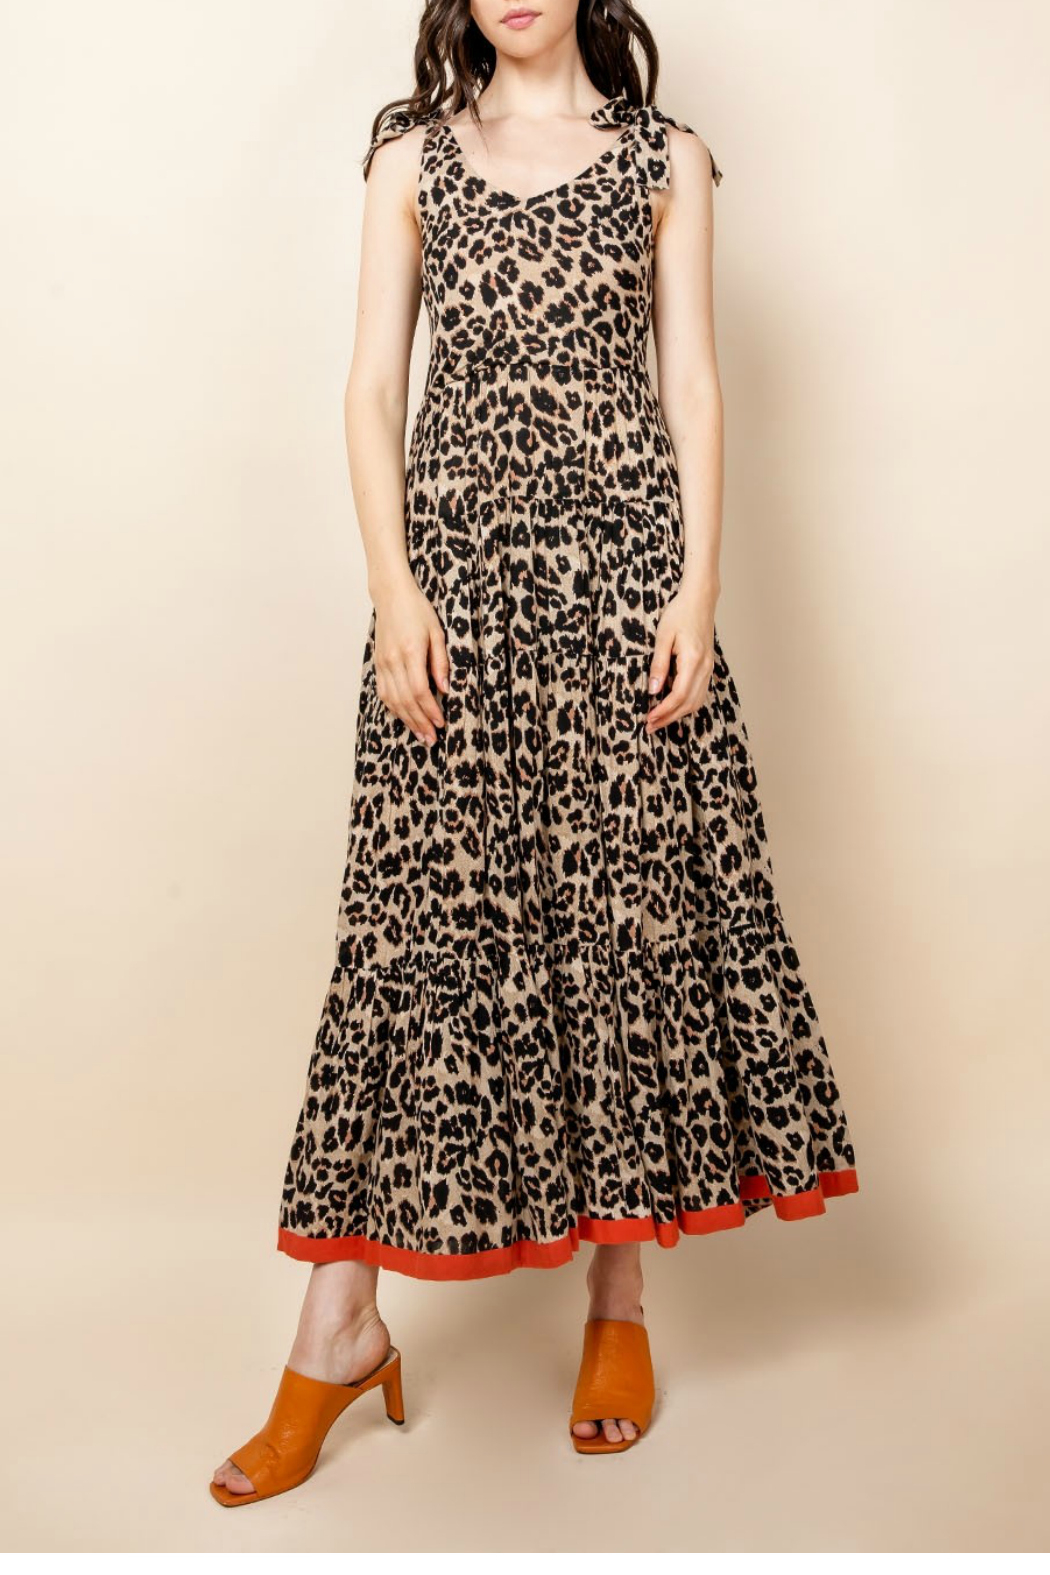 Thml Leopard Tie Strap Dress - Main Image